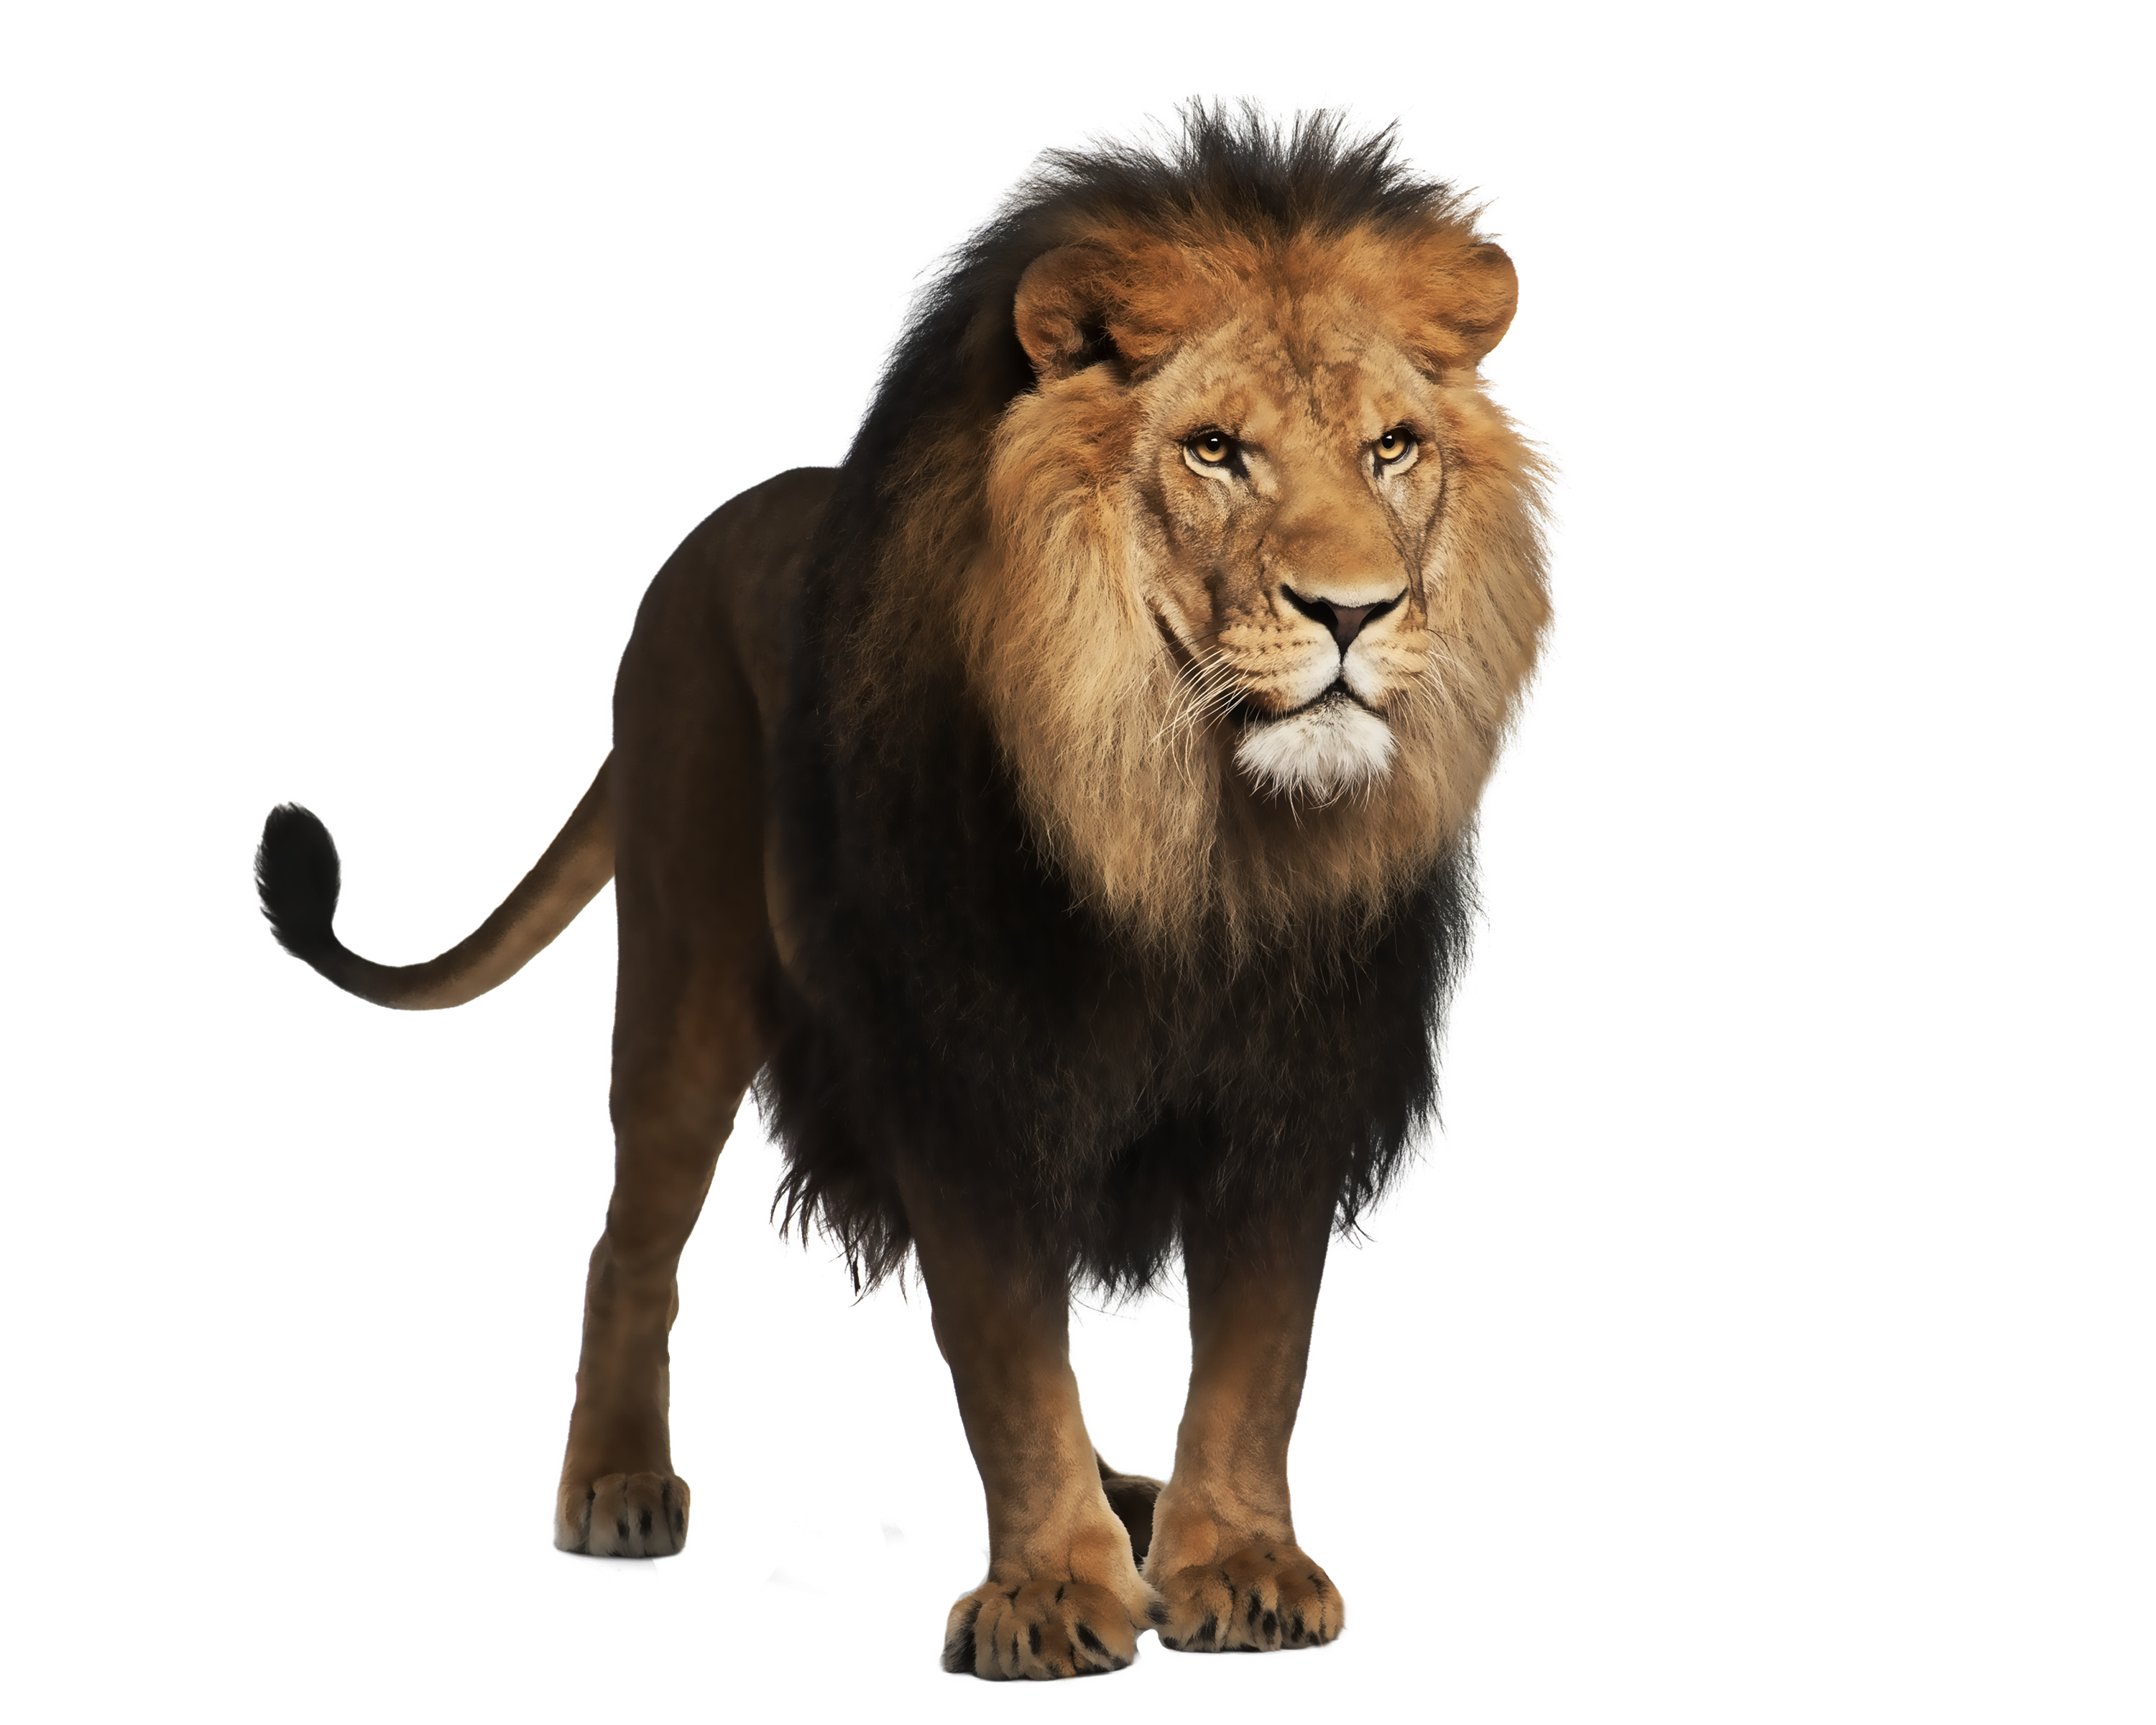 Lion Amazing Image Download